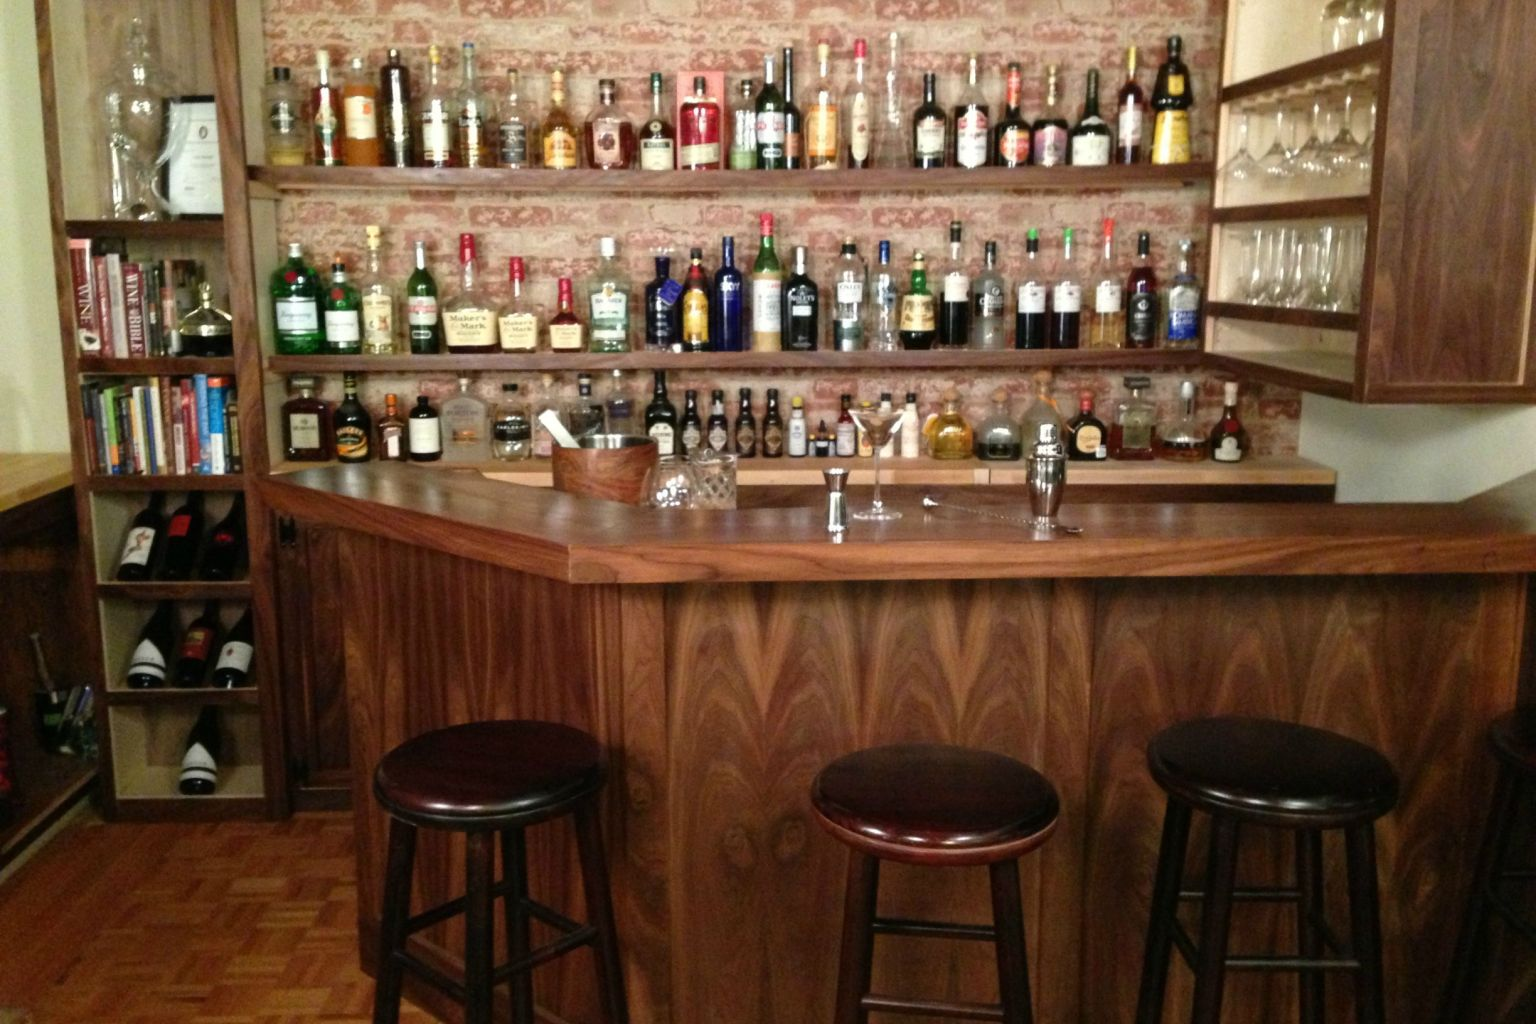 Home Bar Built By A Professional Bartender Takes DIYing To